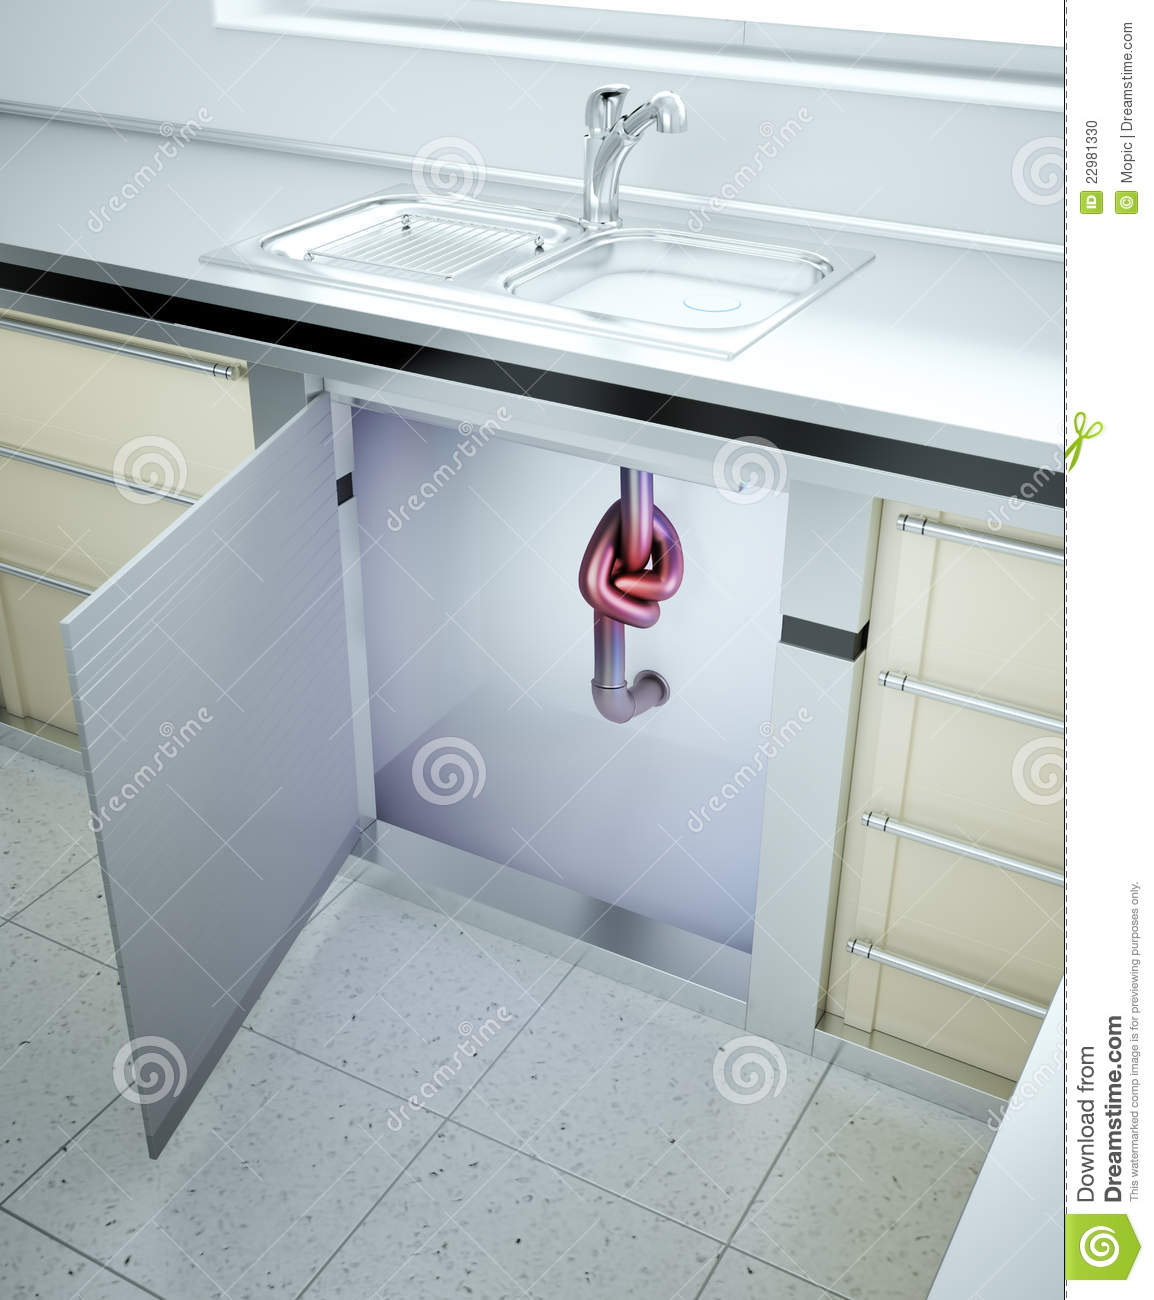 Clogged sink stock illustration. Illustration of pipe - 22981330